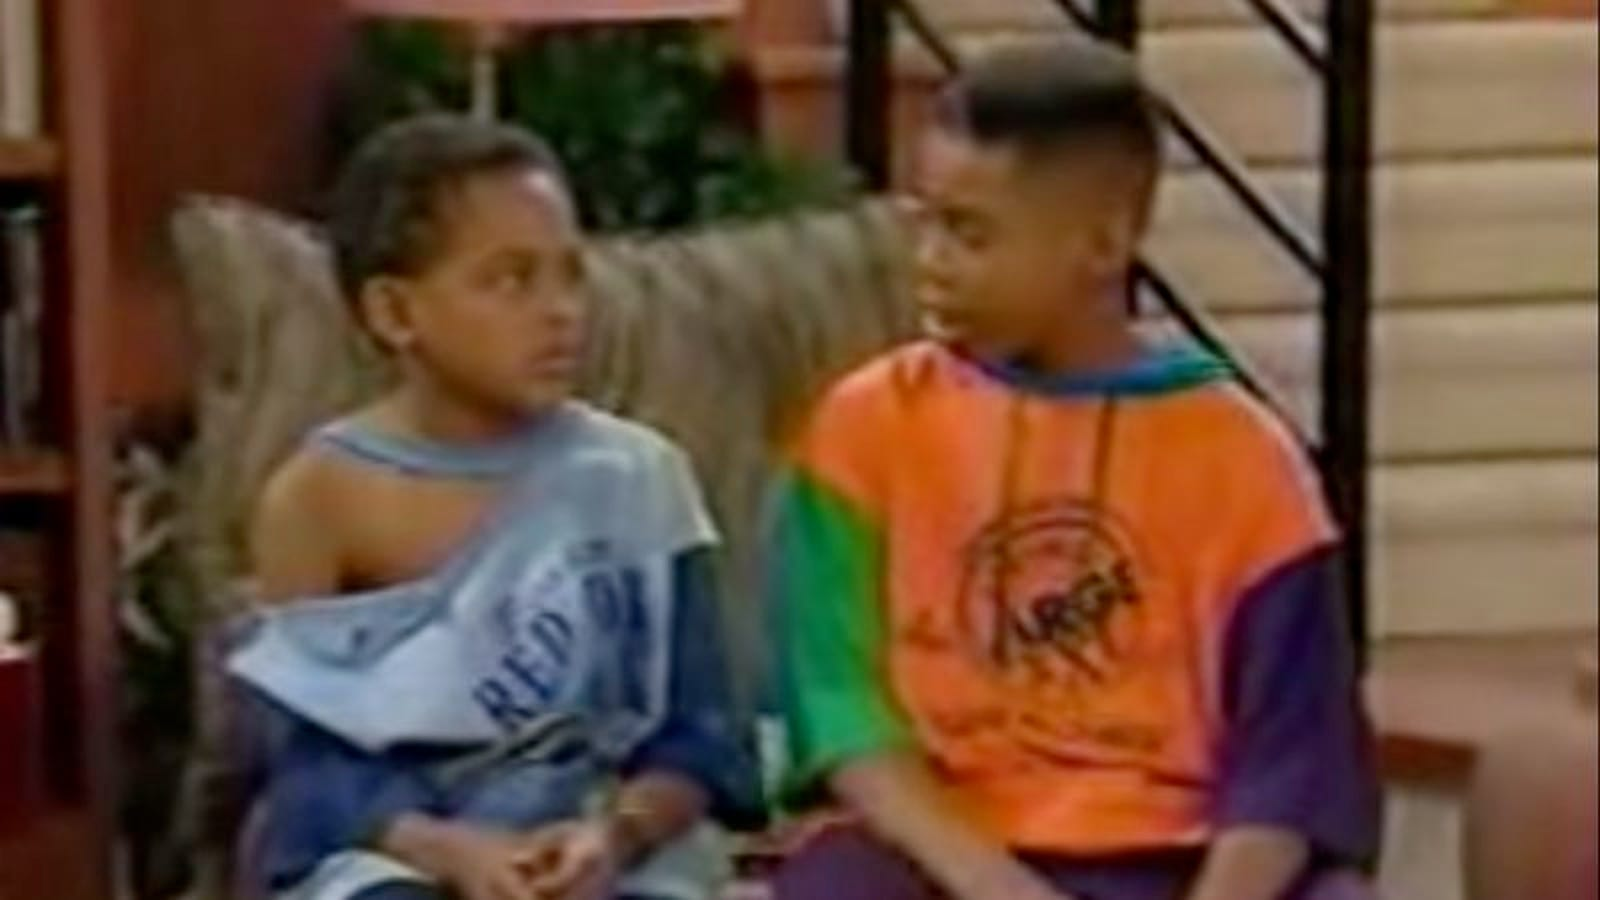 Progressive Near Me >> My Brother And Me, a near-forgotten moment in Nickelodeon ...